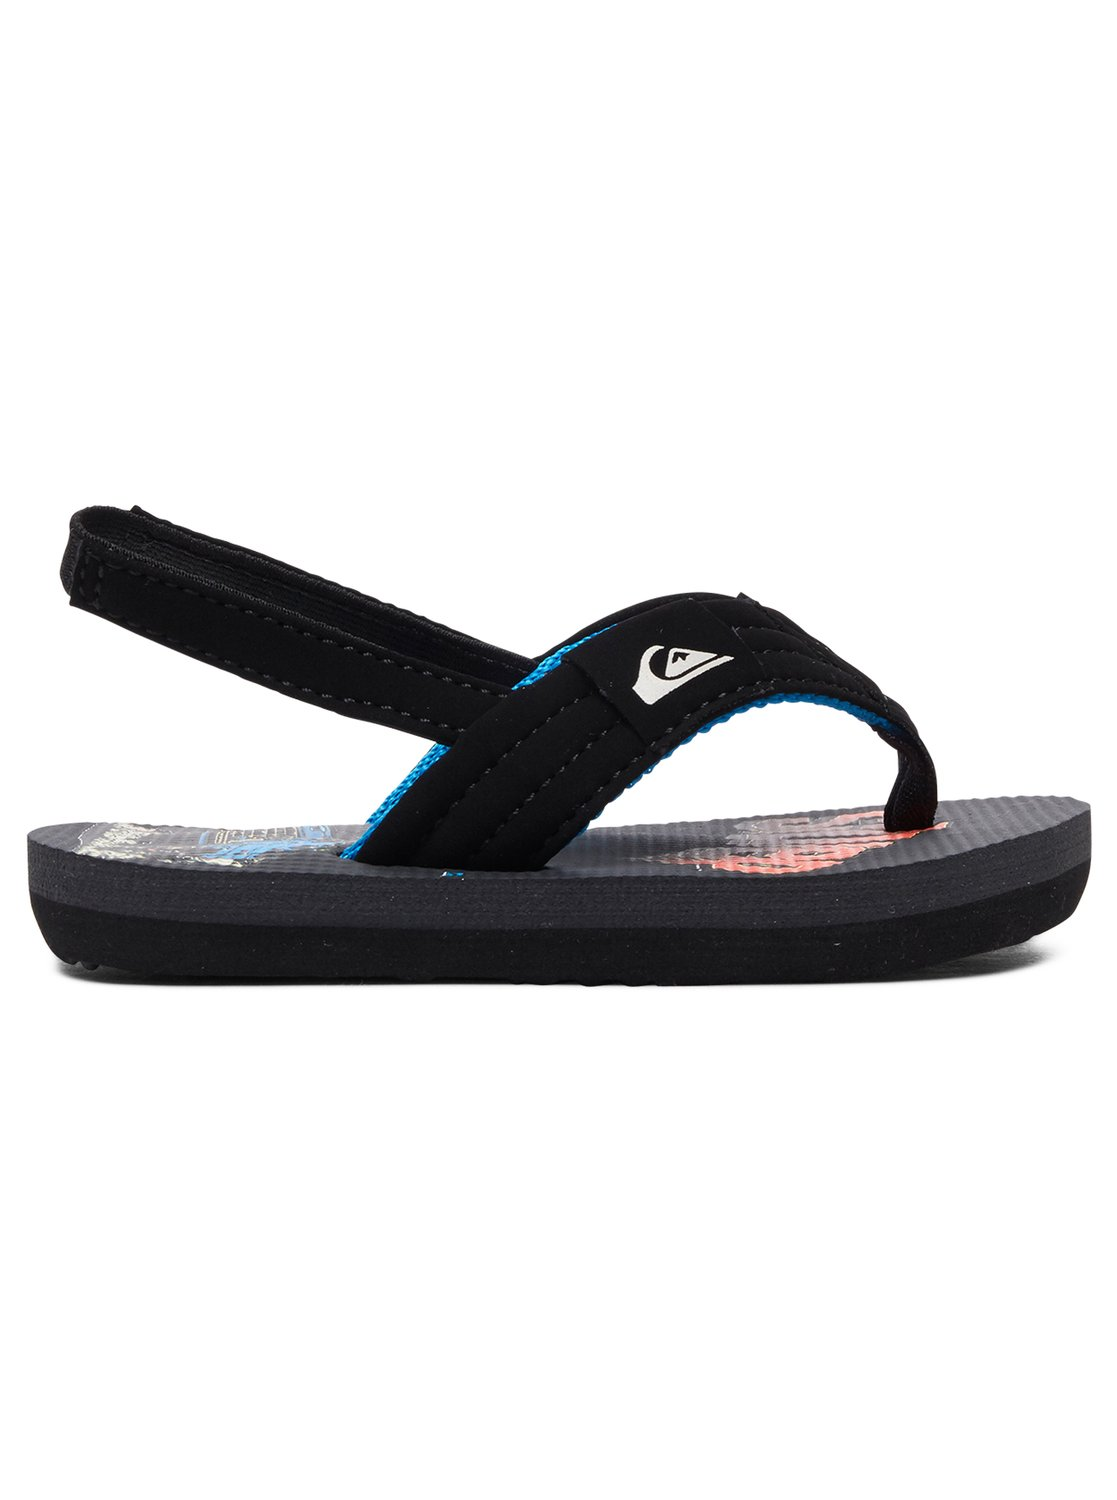 Sandals 3613374384781 Molokai M for Layback Backstrap Toddlers qRFwER6